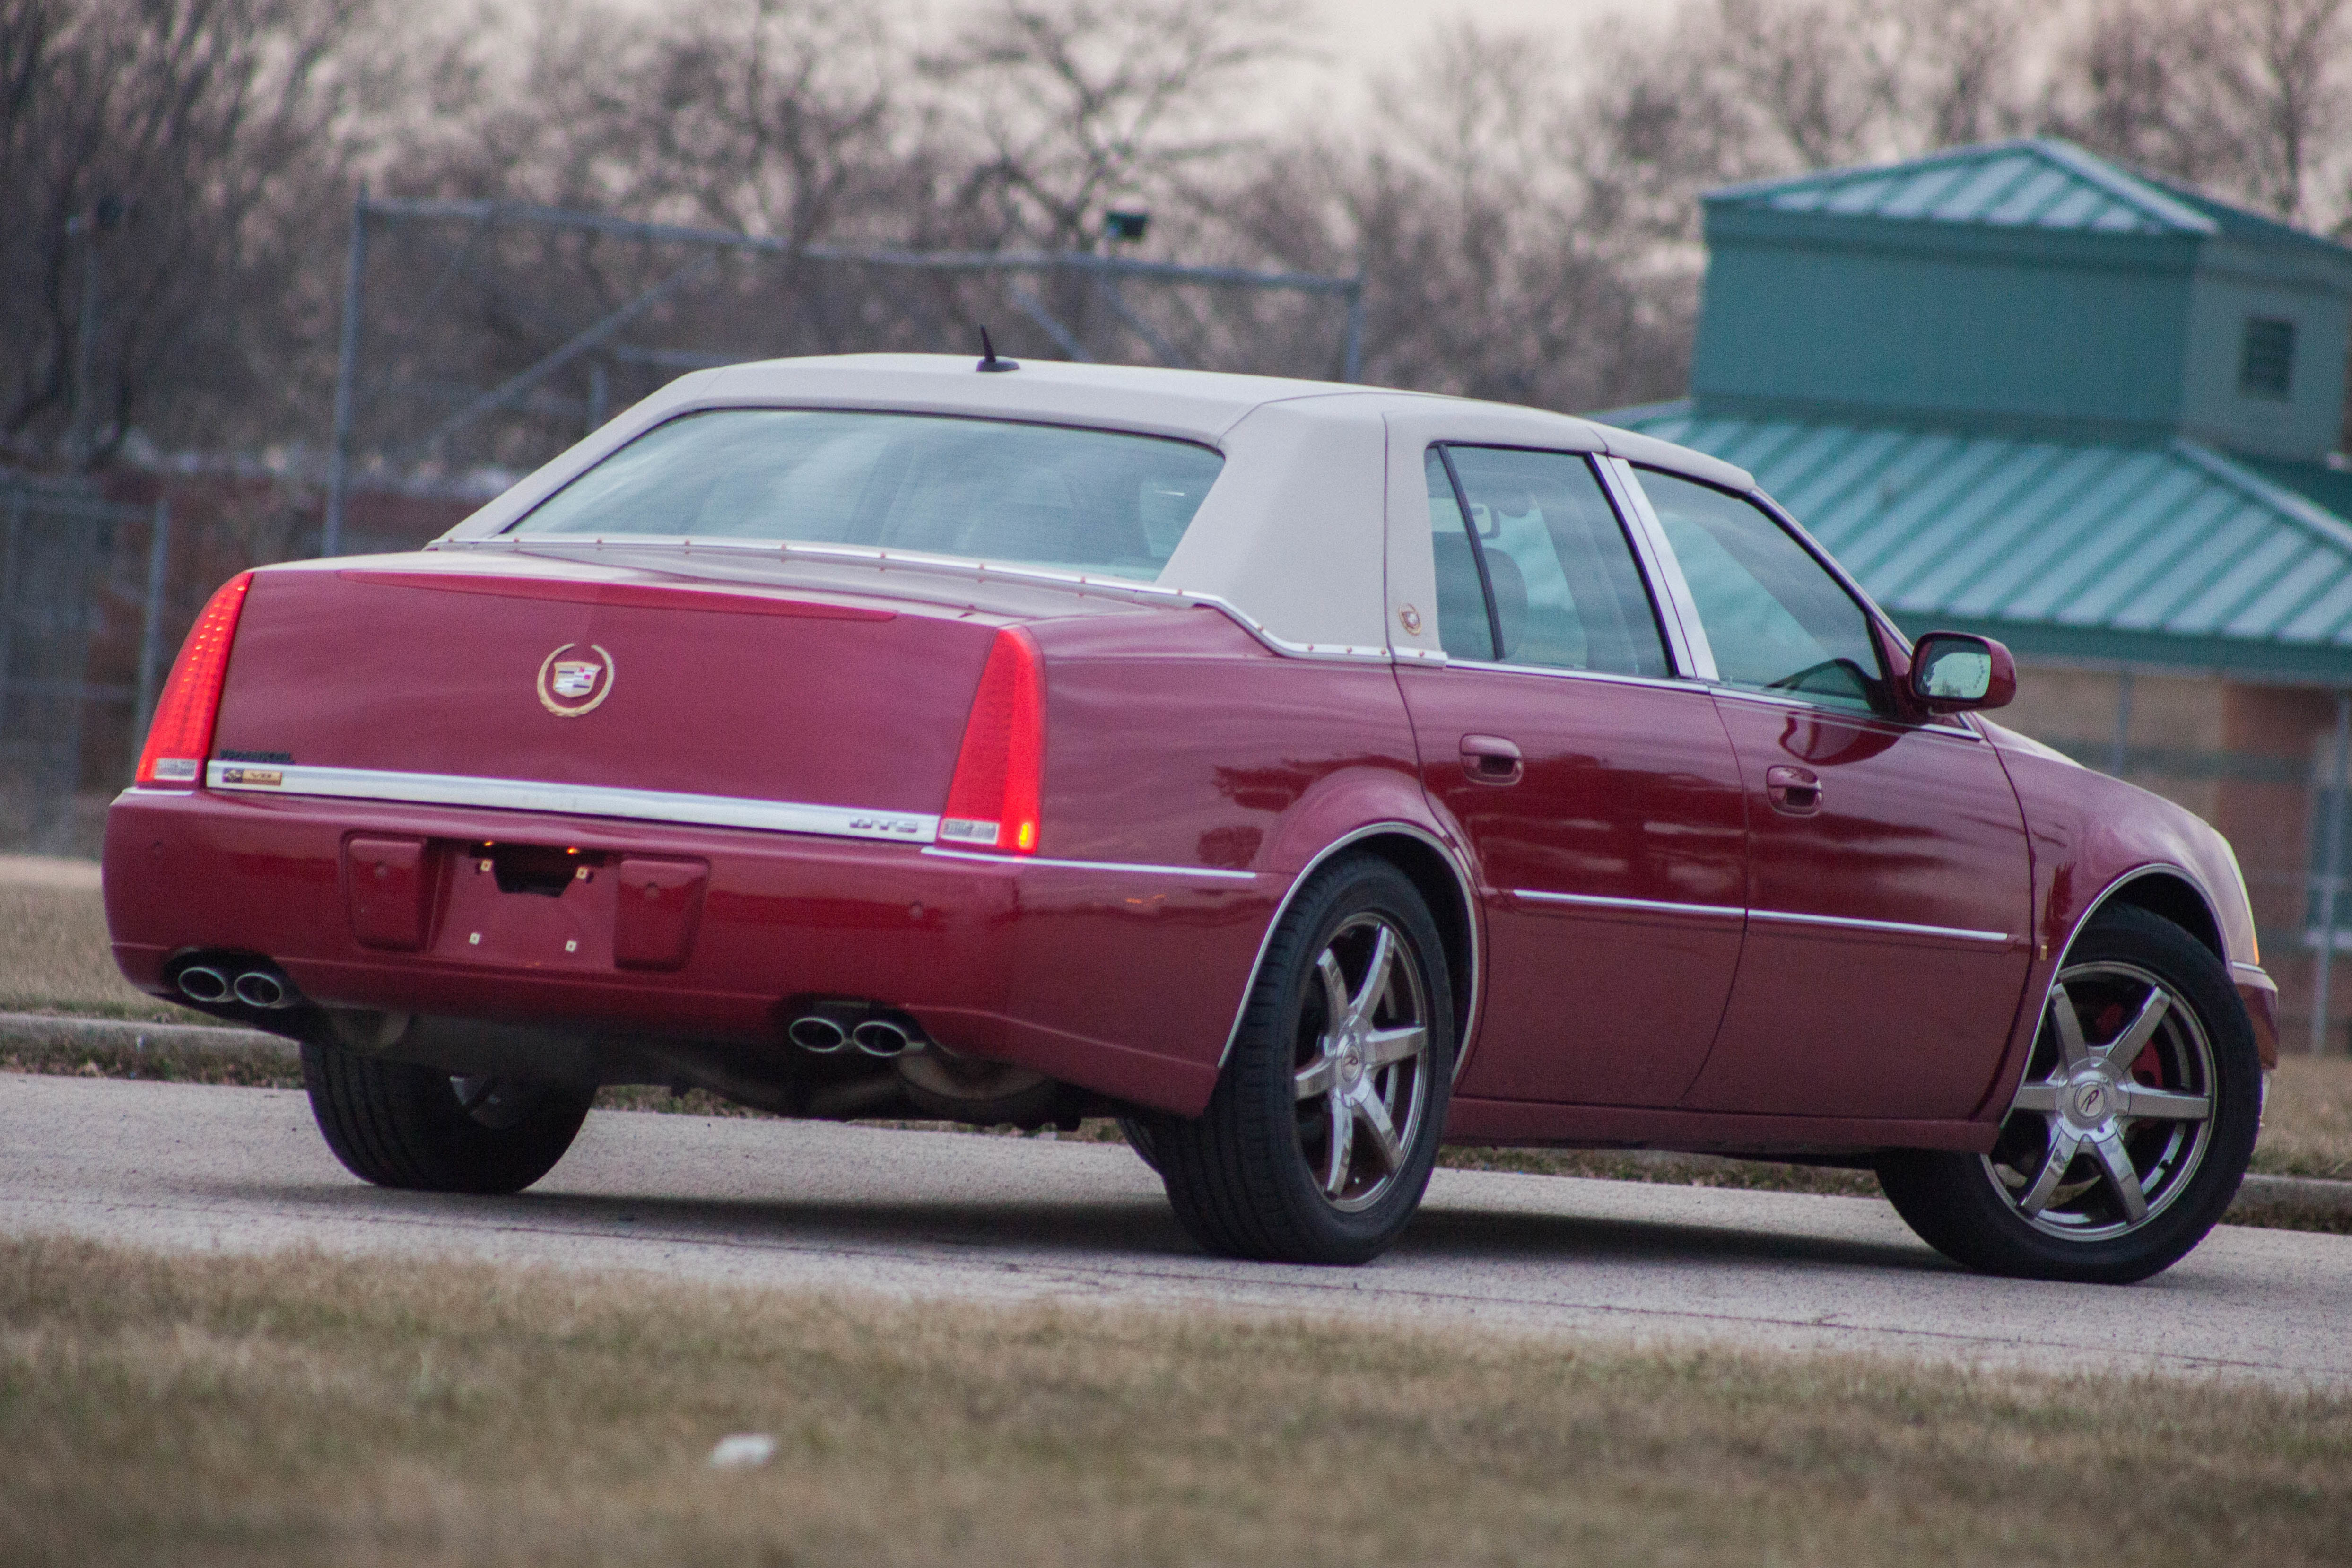 2006 Used Cadillac DTS For sale | Car Dealership in ...